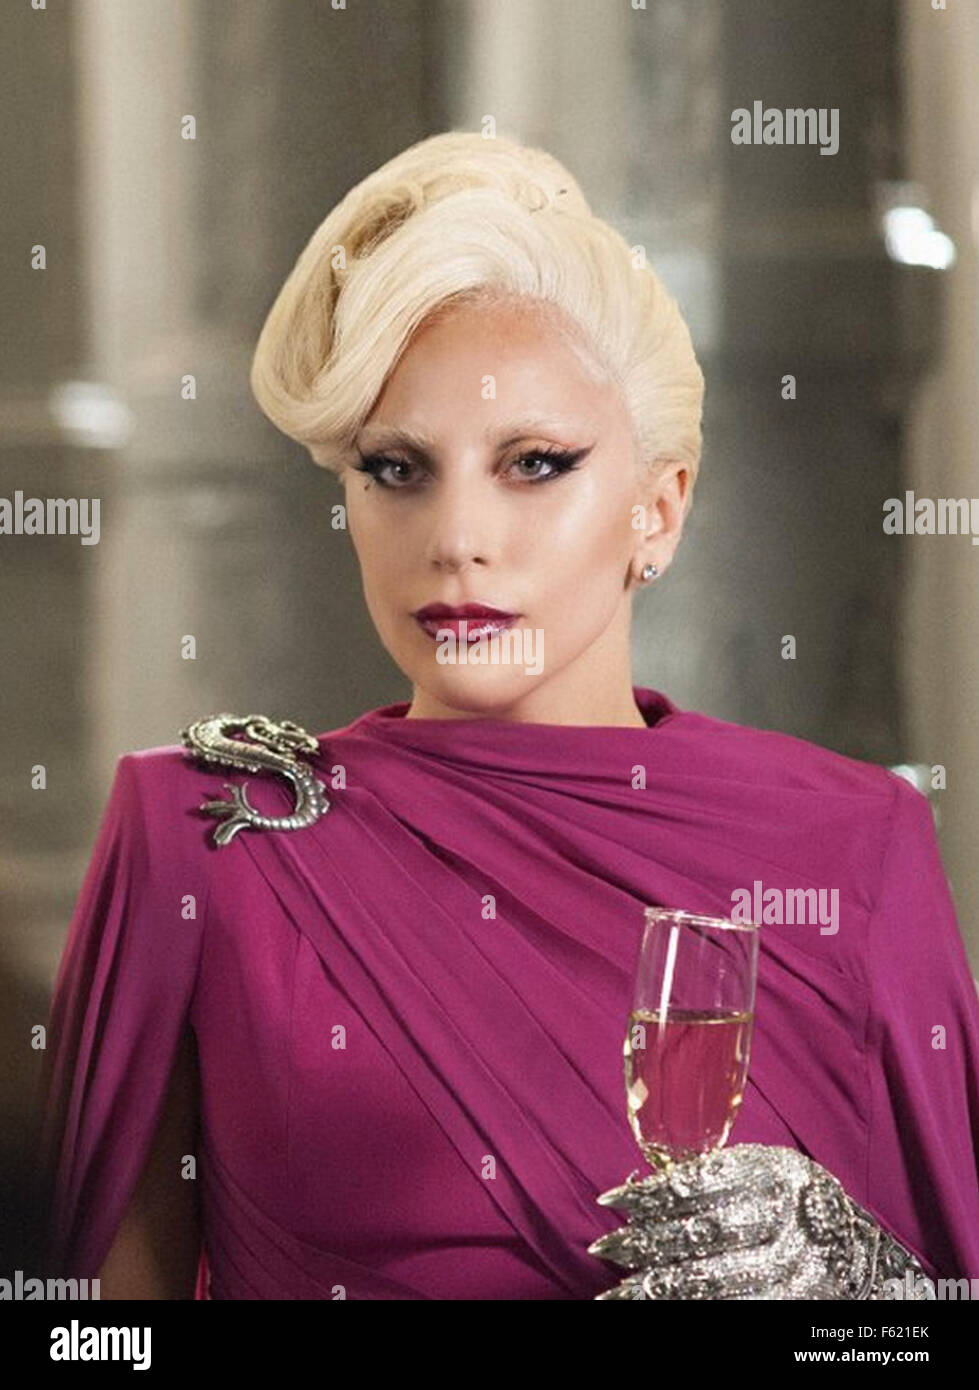 AMERICAN HORROR STORY 20th Century Fox Television series with Lady Gaga as The Countess Elizabeth in the fifth season - Stock Image